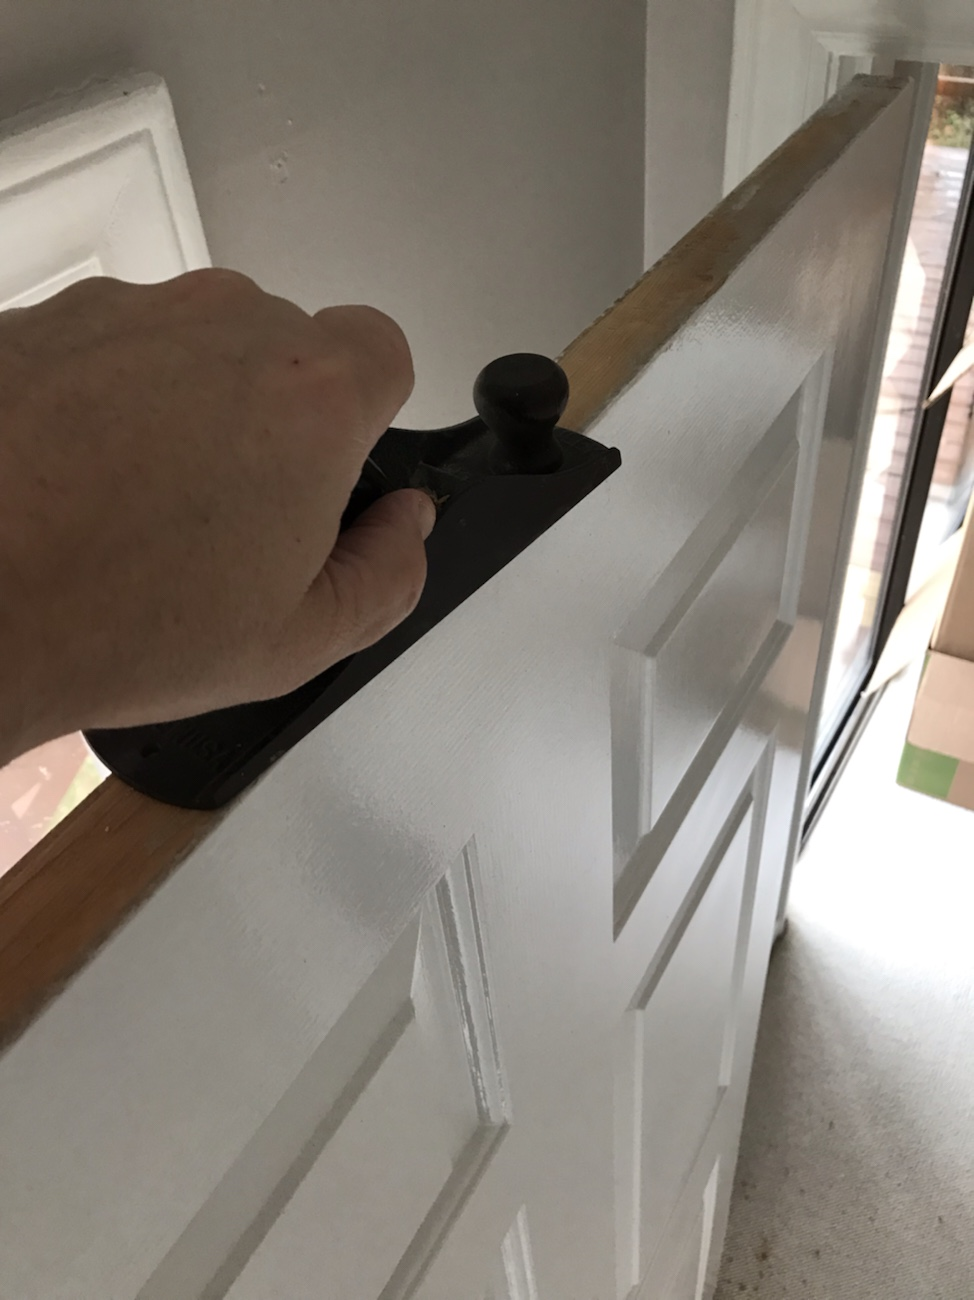 Long even strokes on planing a door